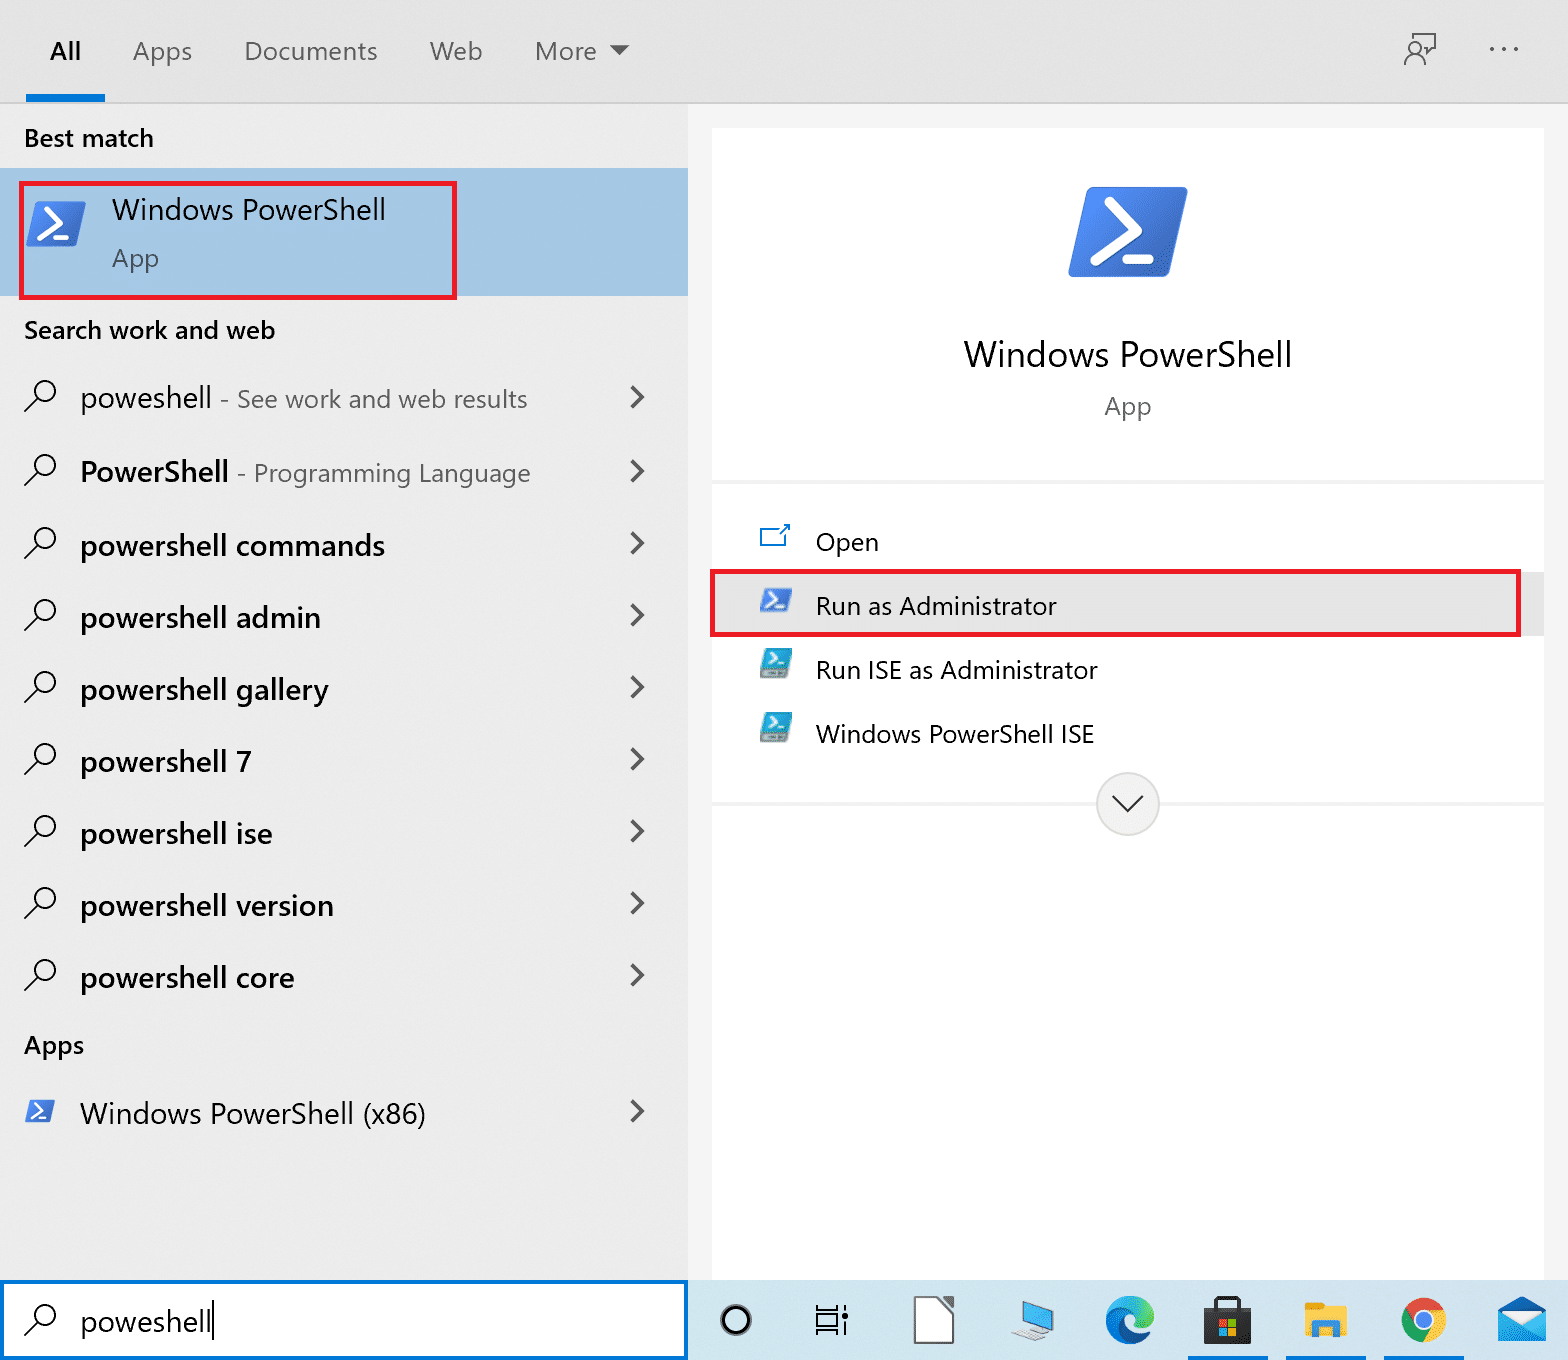 Type Powershell in the Windows search bar and then launch Windows Powershell